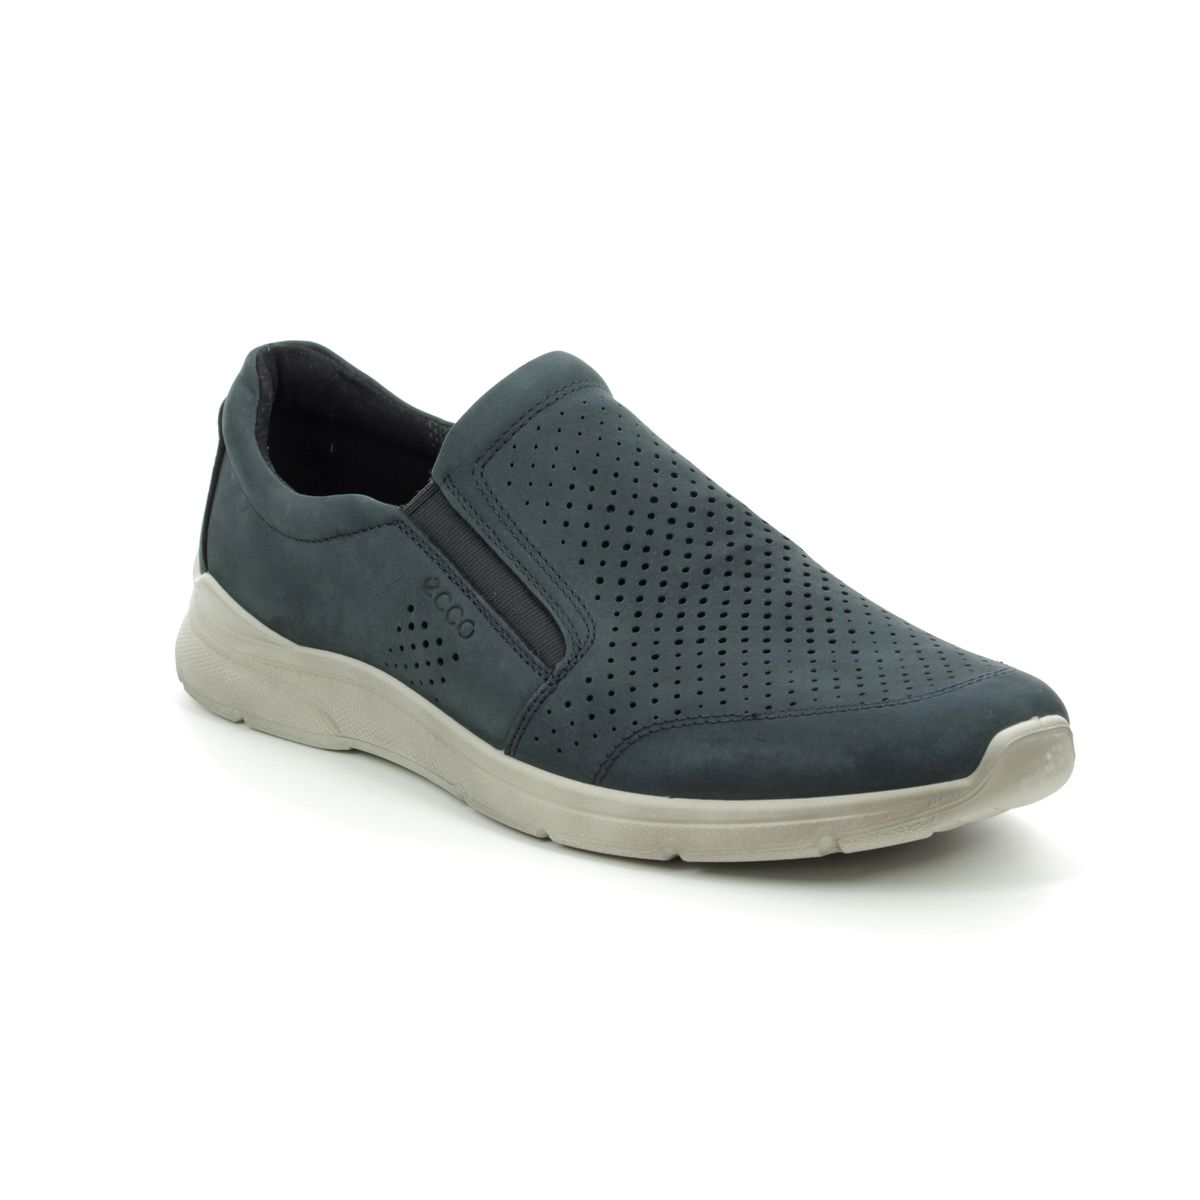 6aabcf099490 ECCO Casual Shoes - Navy nubuck - 511644 02058 IRVING SLIP-ON